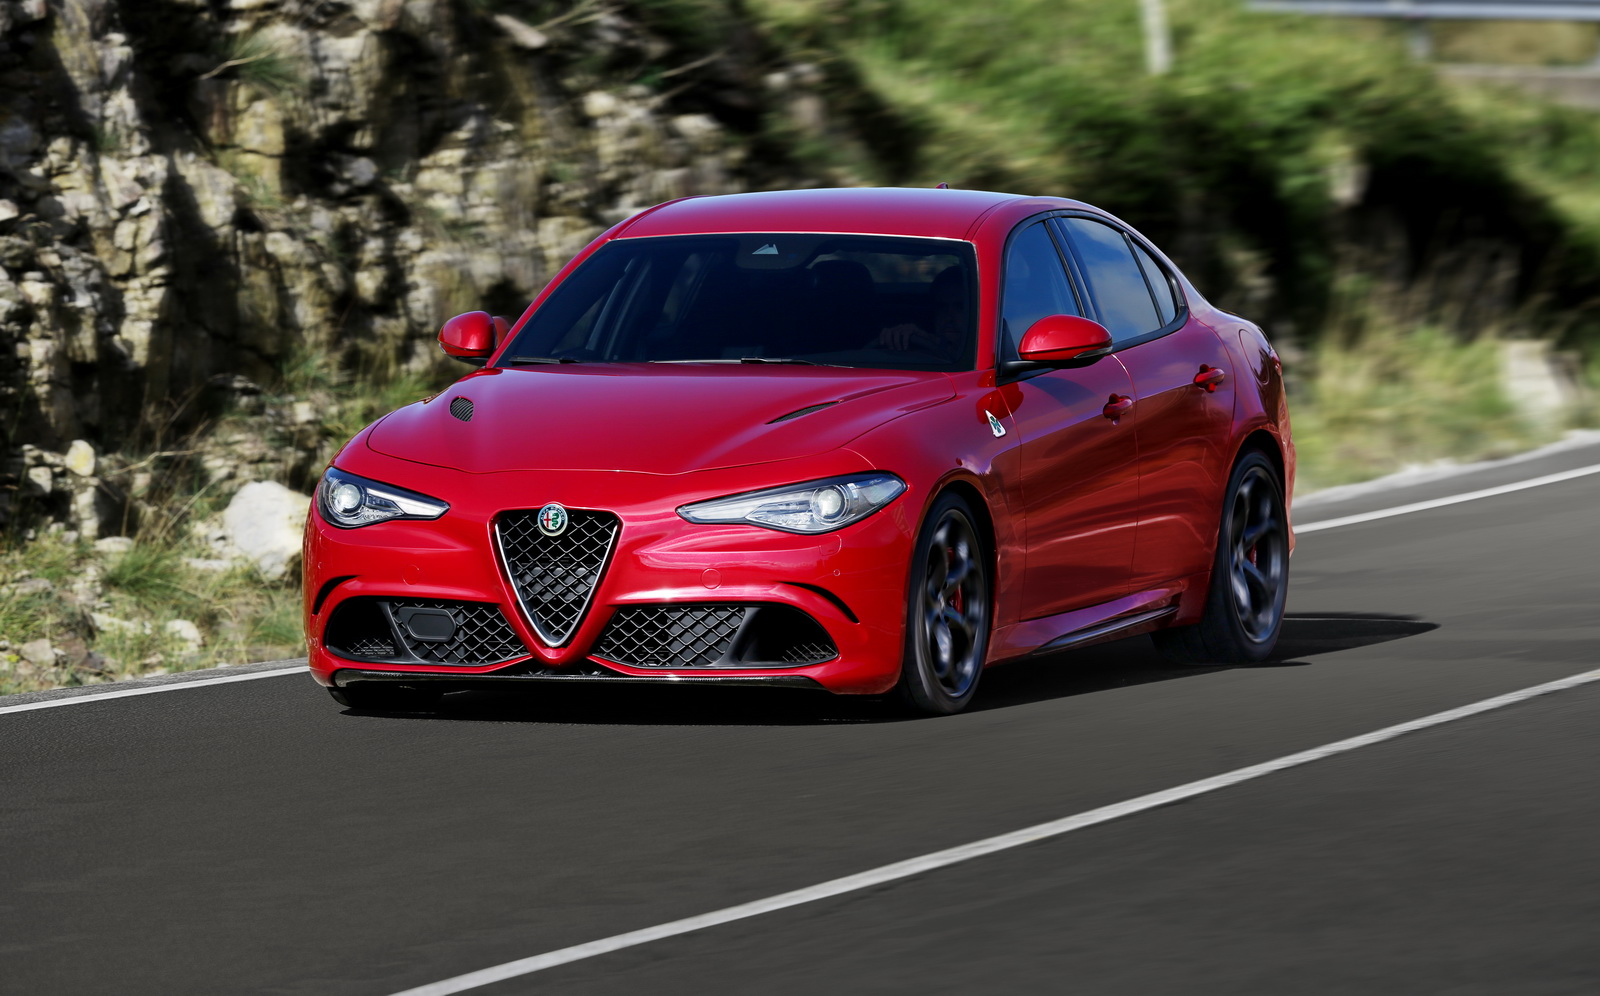 alfa romeo giulia qv priced and laps nurburgring in 7 39. Black Bedroom Furniture Sets. Home Design Ideas